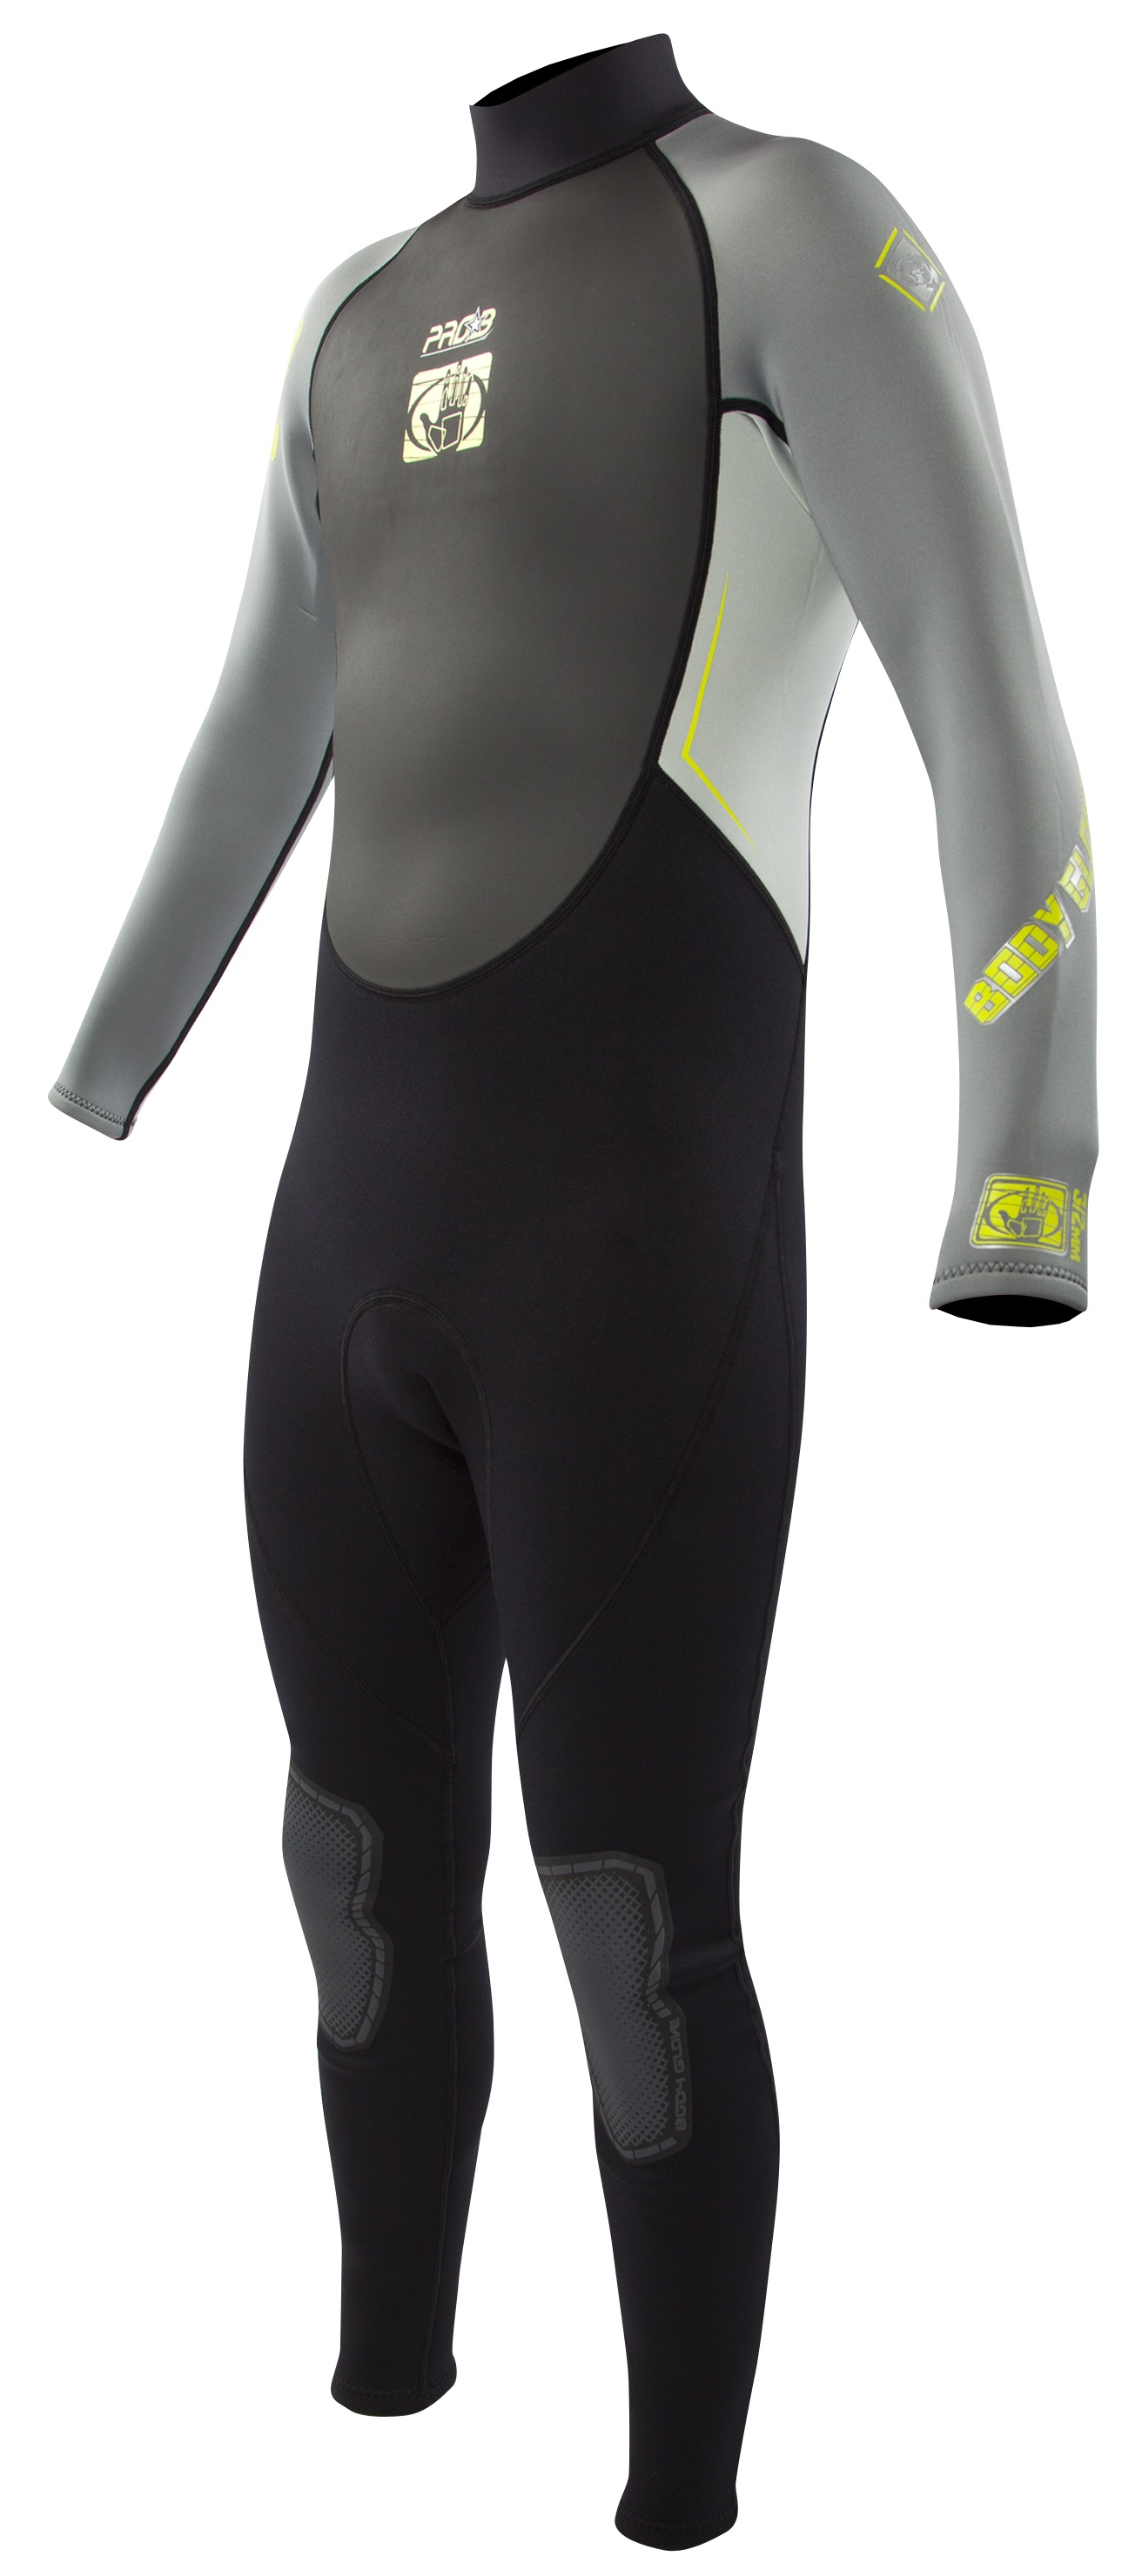 Body Glove Men's Pro 3 3/2mm Full Wetsuit - Black/Grey/Lime